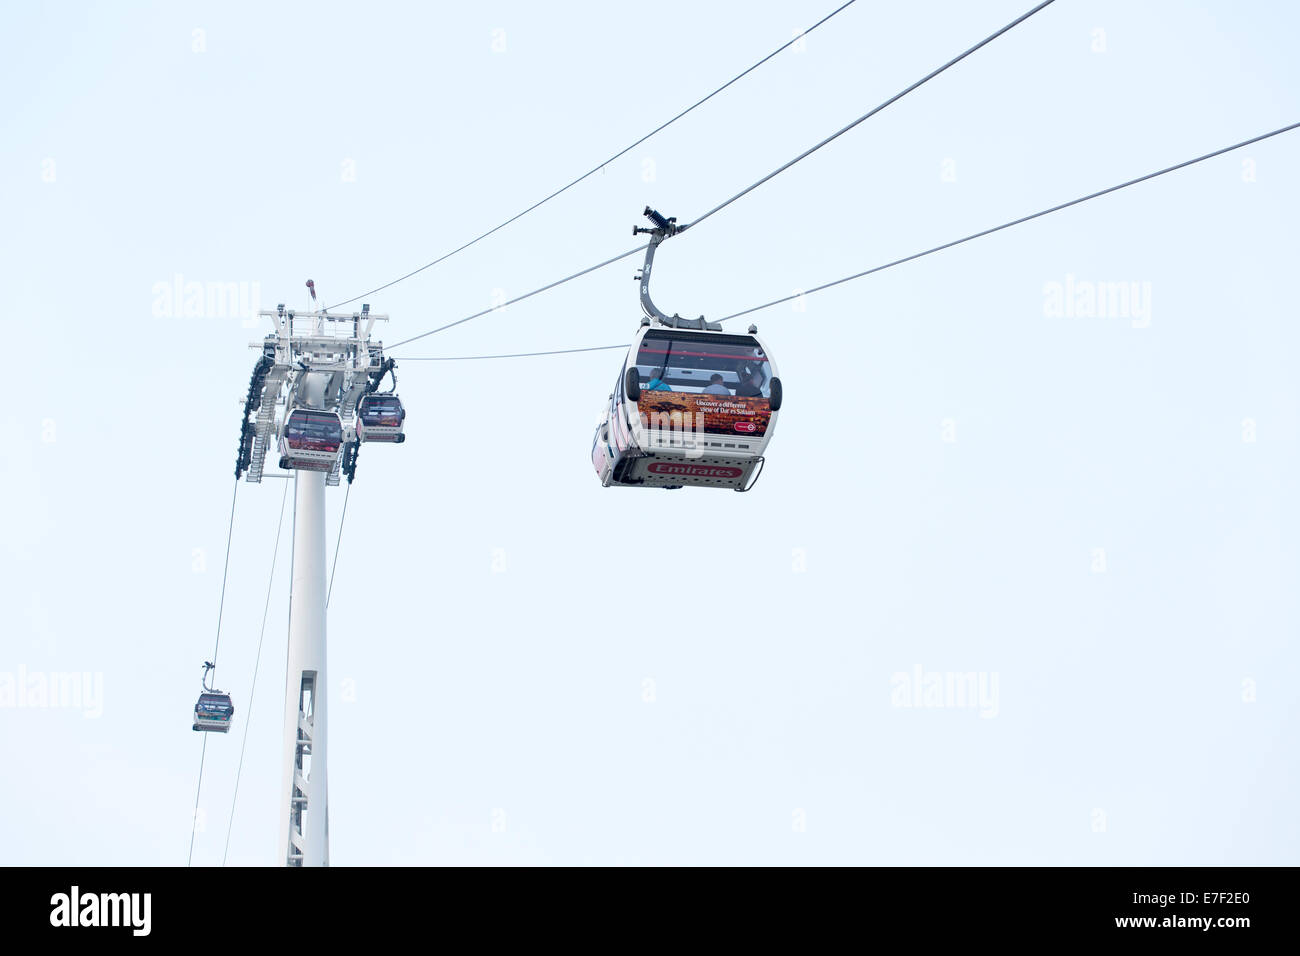 Gondolas of the Emirates Air Line cable car across the river Thames in Greenwich, East London - Stock Image